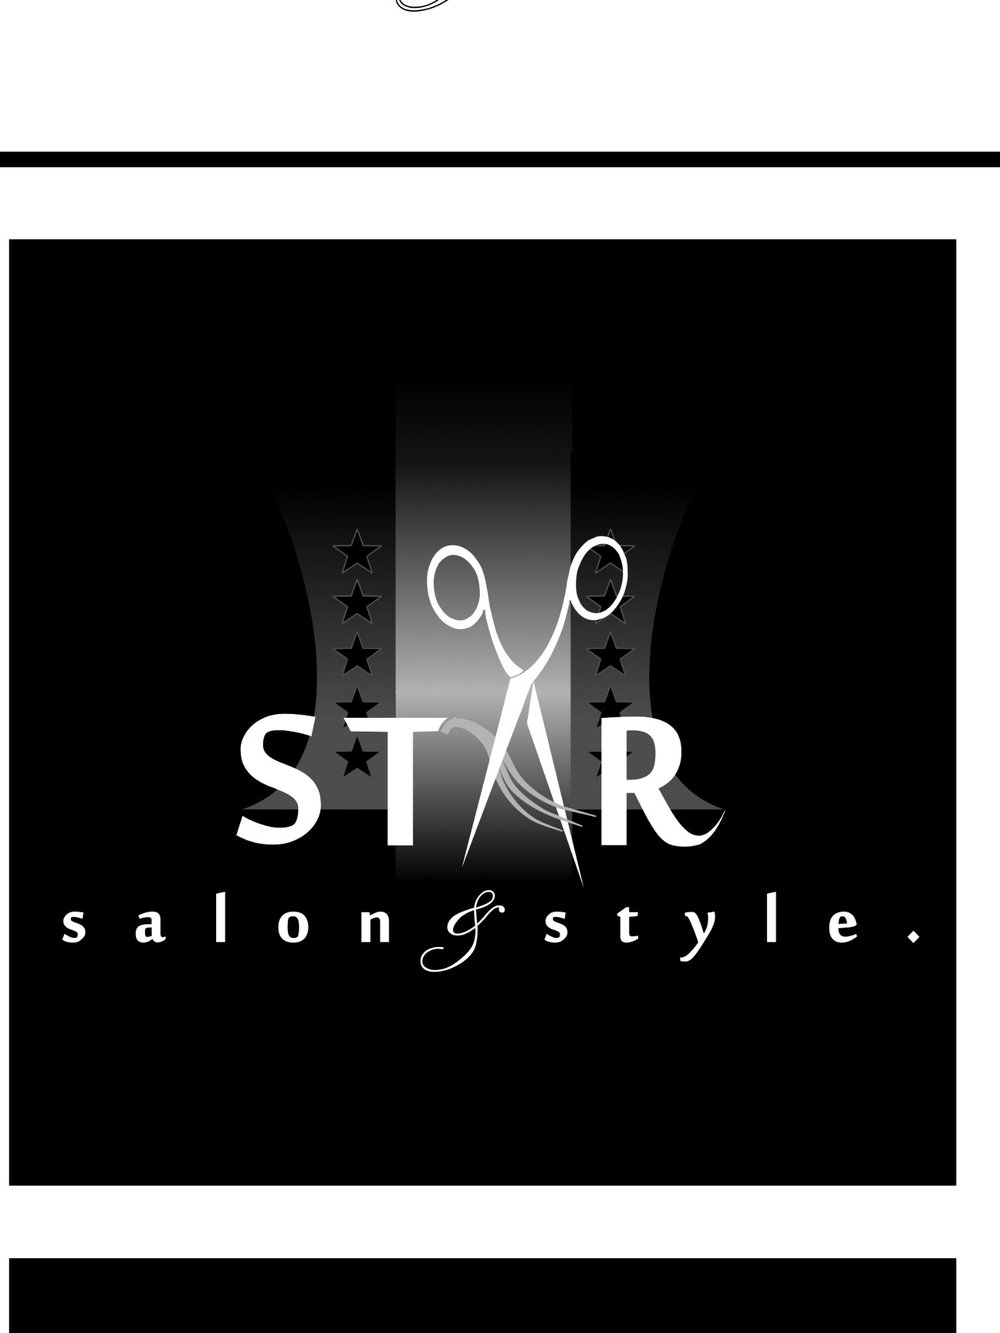 Star Salon.JPG